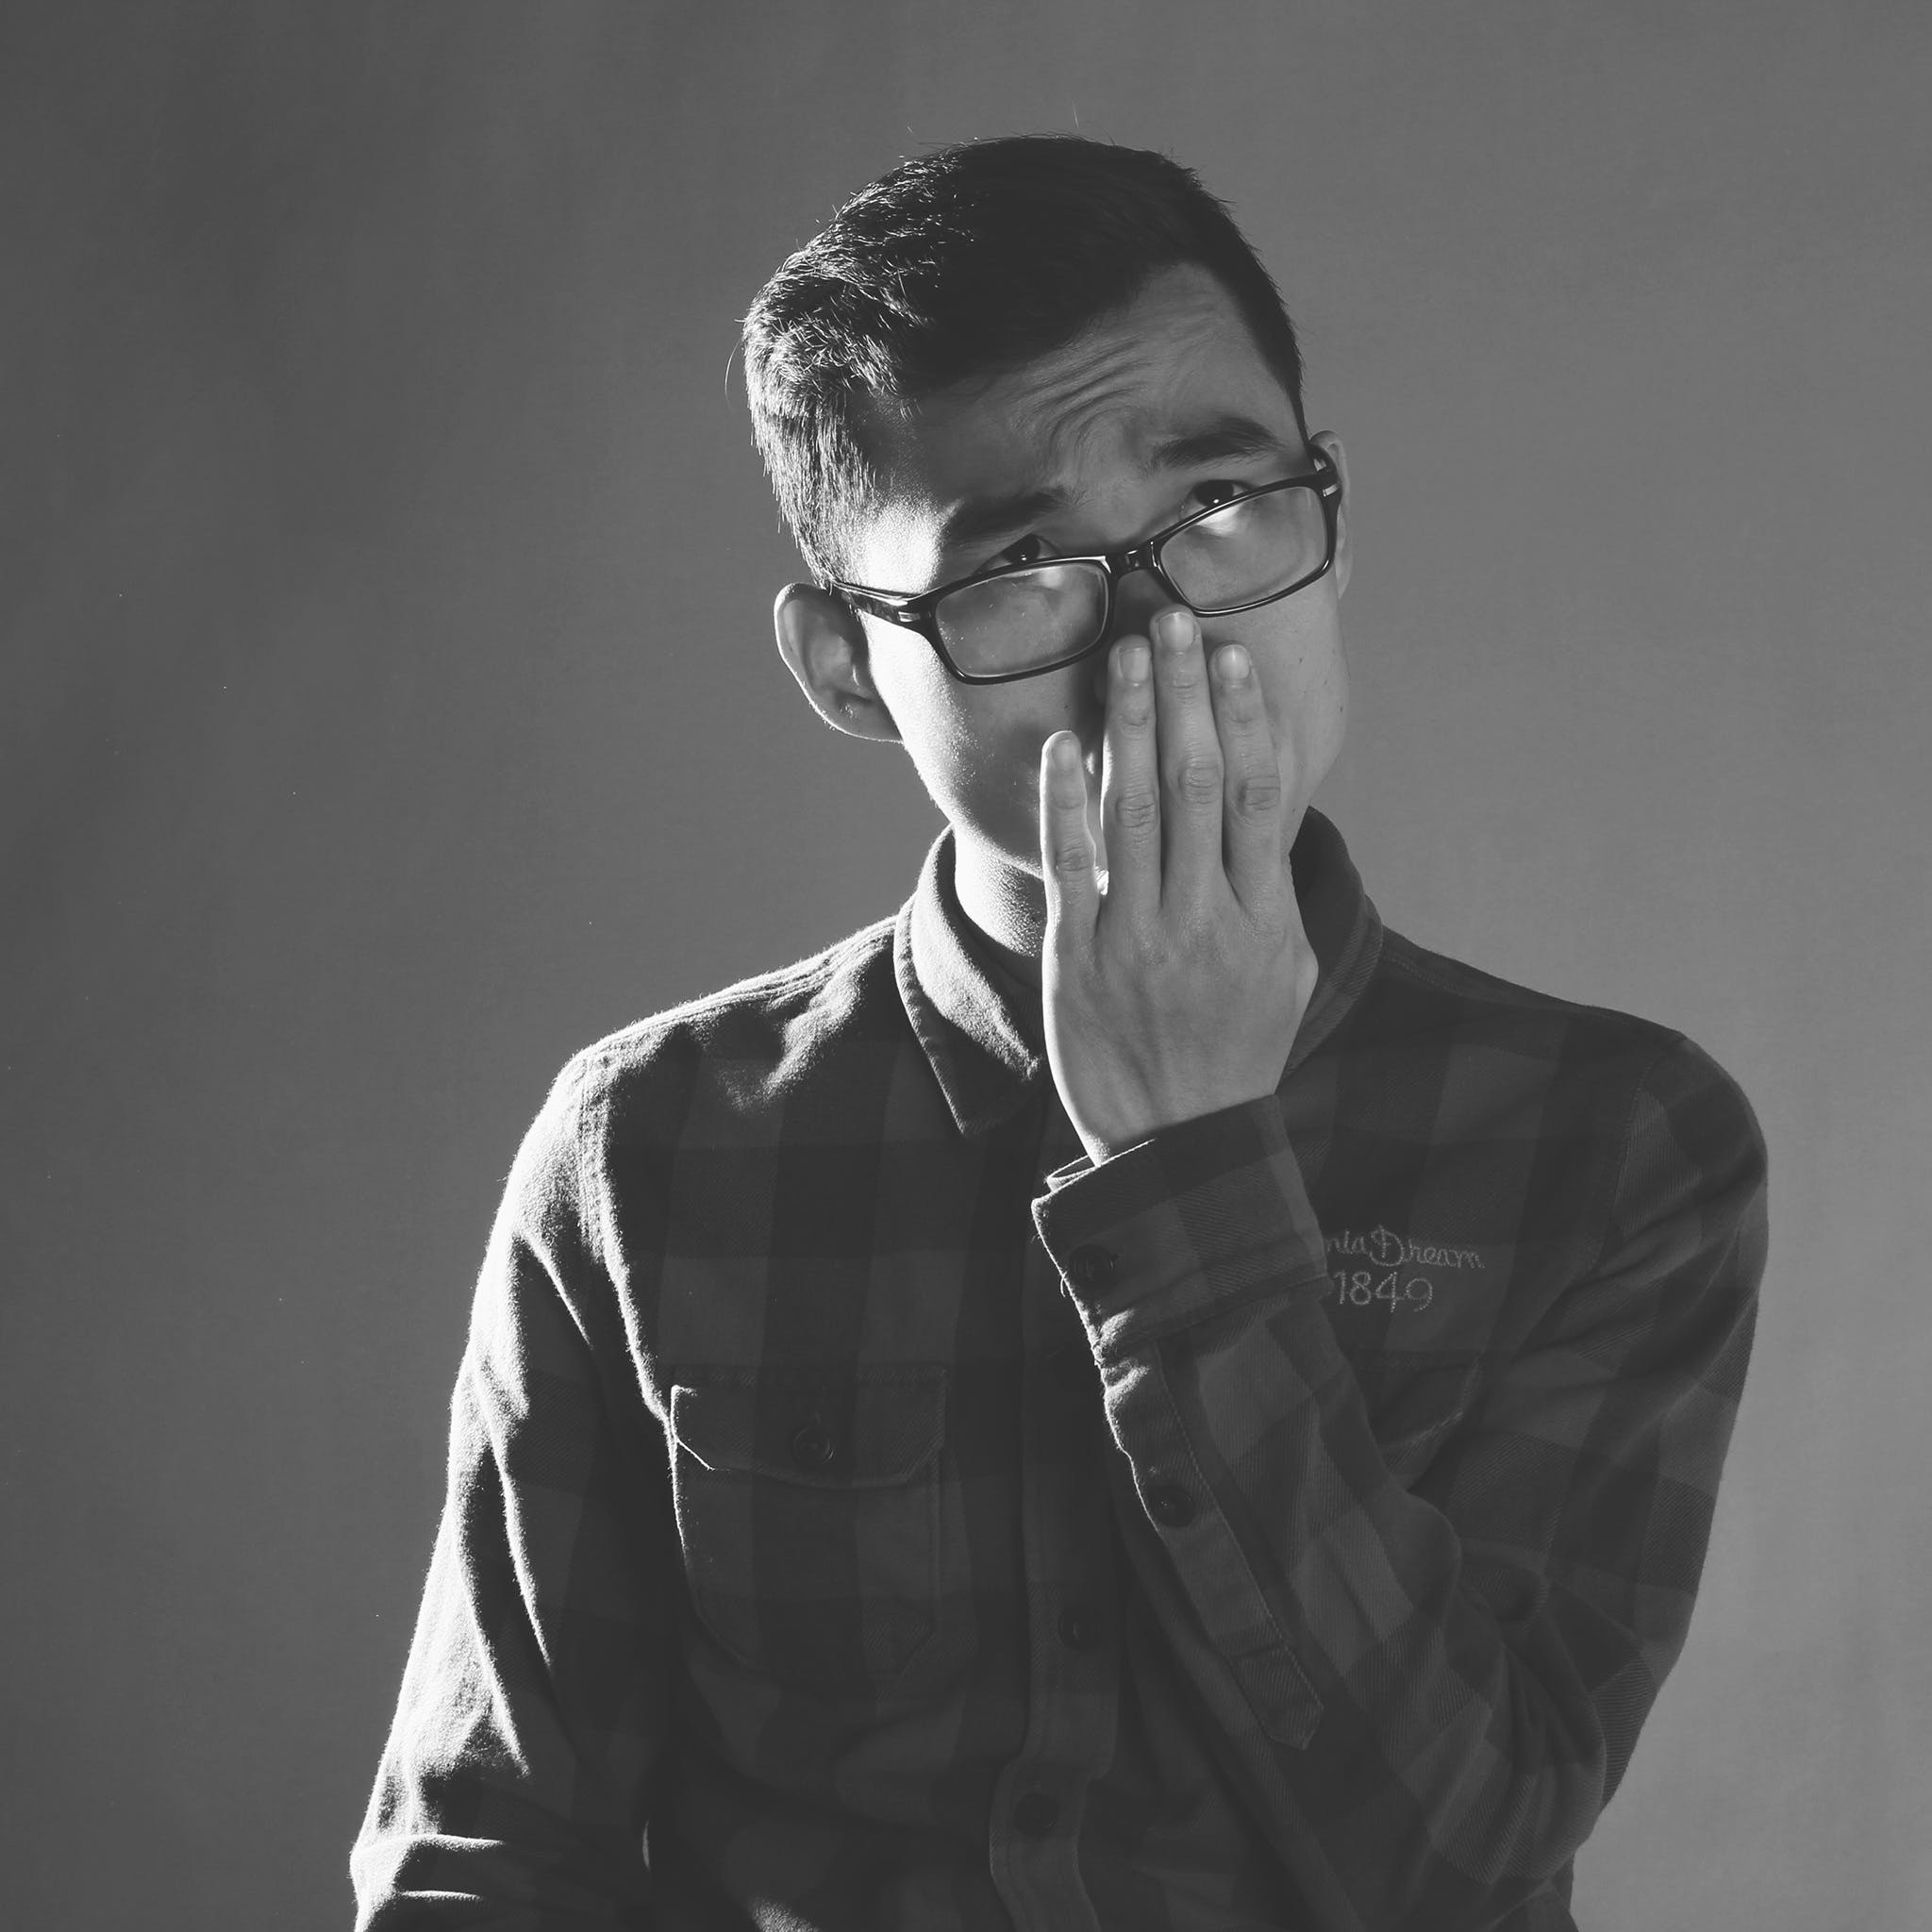 Grayscale Photography of Man Wearing Eyeglasses